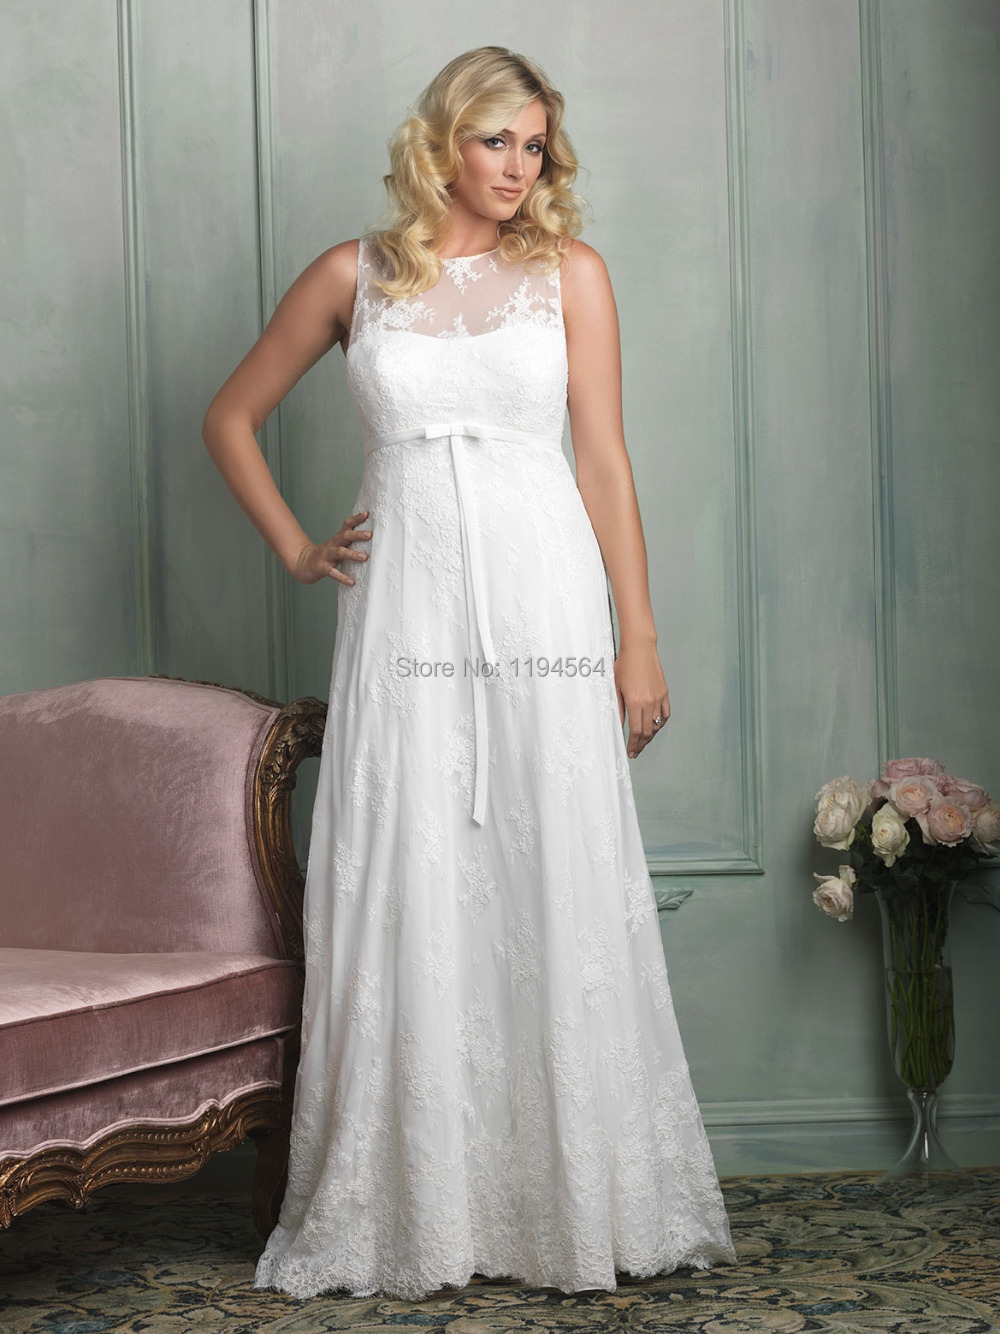 e7381fc037 2015 New Arrival Modest Sheer High Neck Lace Wedding Dress Plus Size See  Thorugh Back Turtleneck Summer Beach Bride Gowns WH611